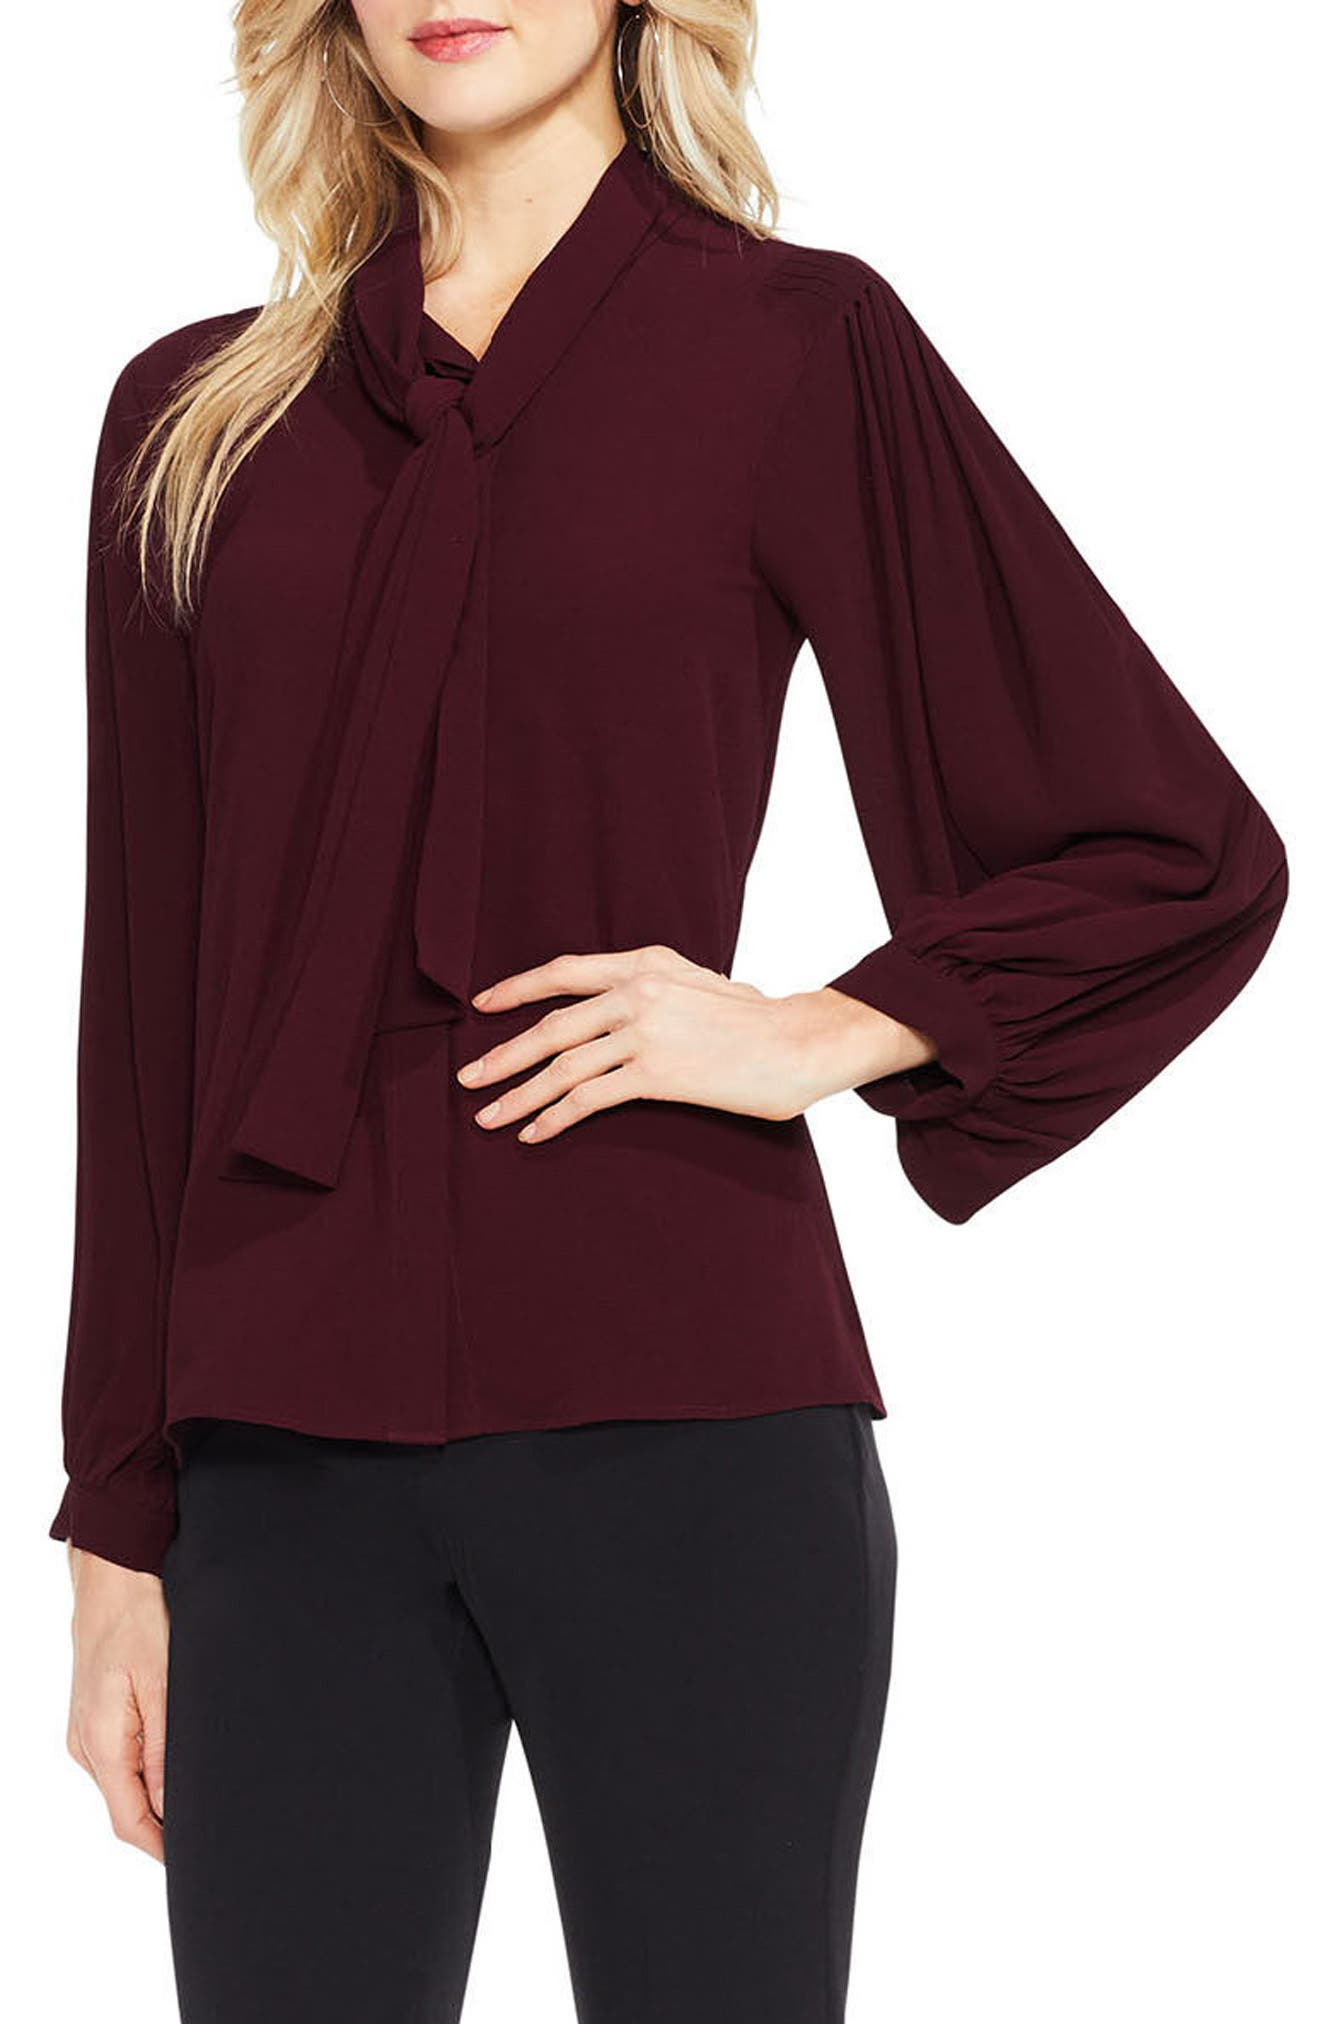 Alternate Image 1 Selected - Vince Camuto Long Sleeve Tie-Neck Blouse